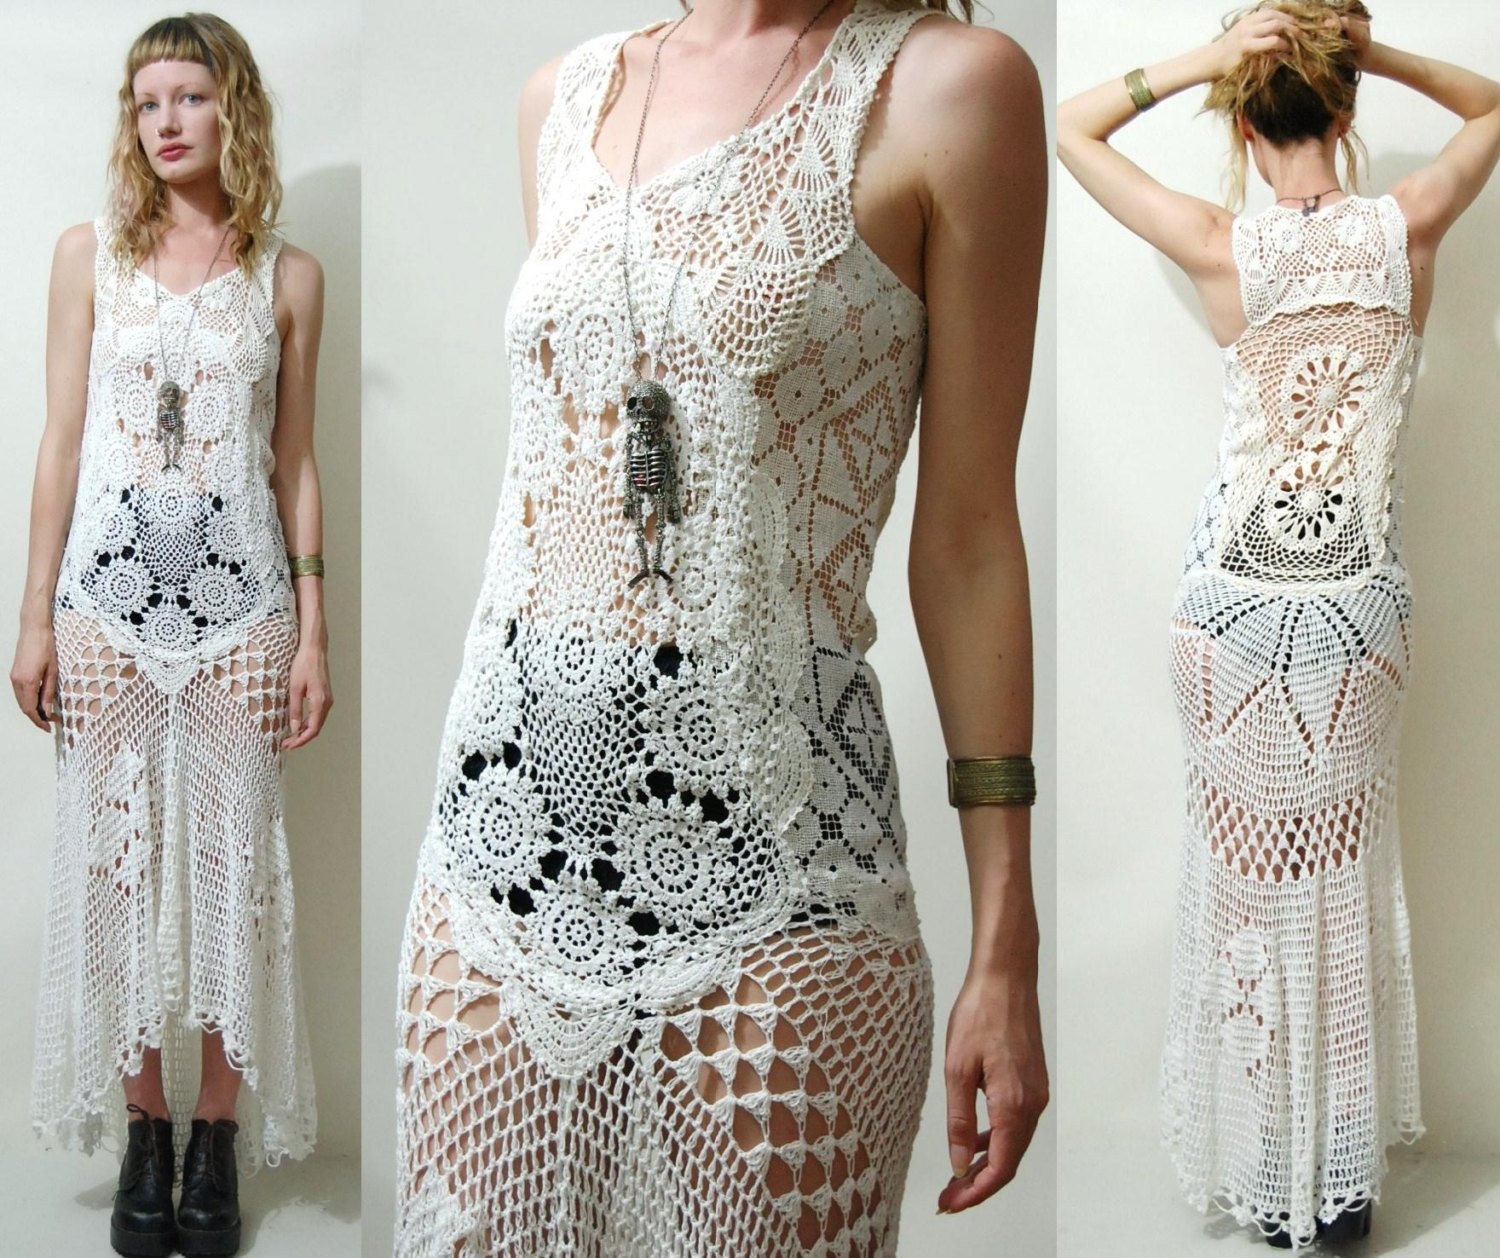 White Lace Crochet Dress Awesome Crochet Dress Vintage Full Lace White Fishtail Train Bohemian Of Awesome 48 Photos White Lace Crochet Dress